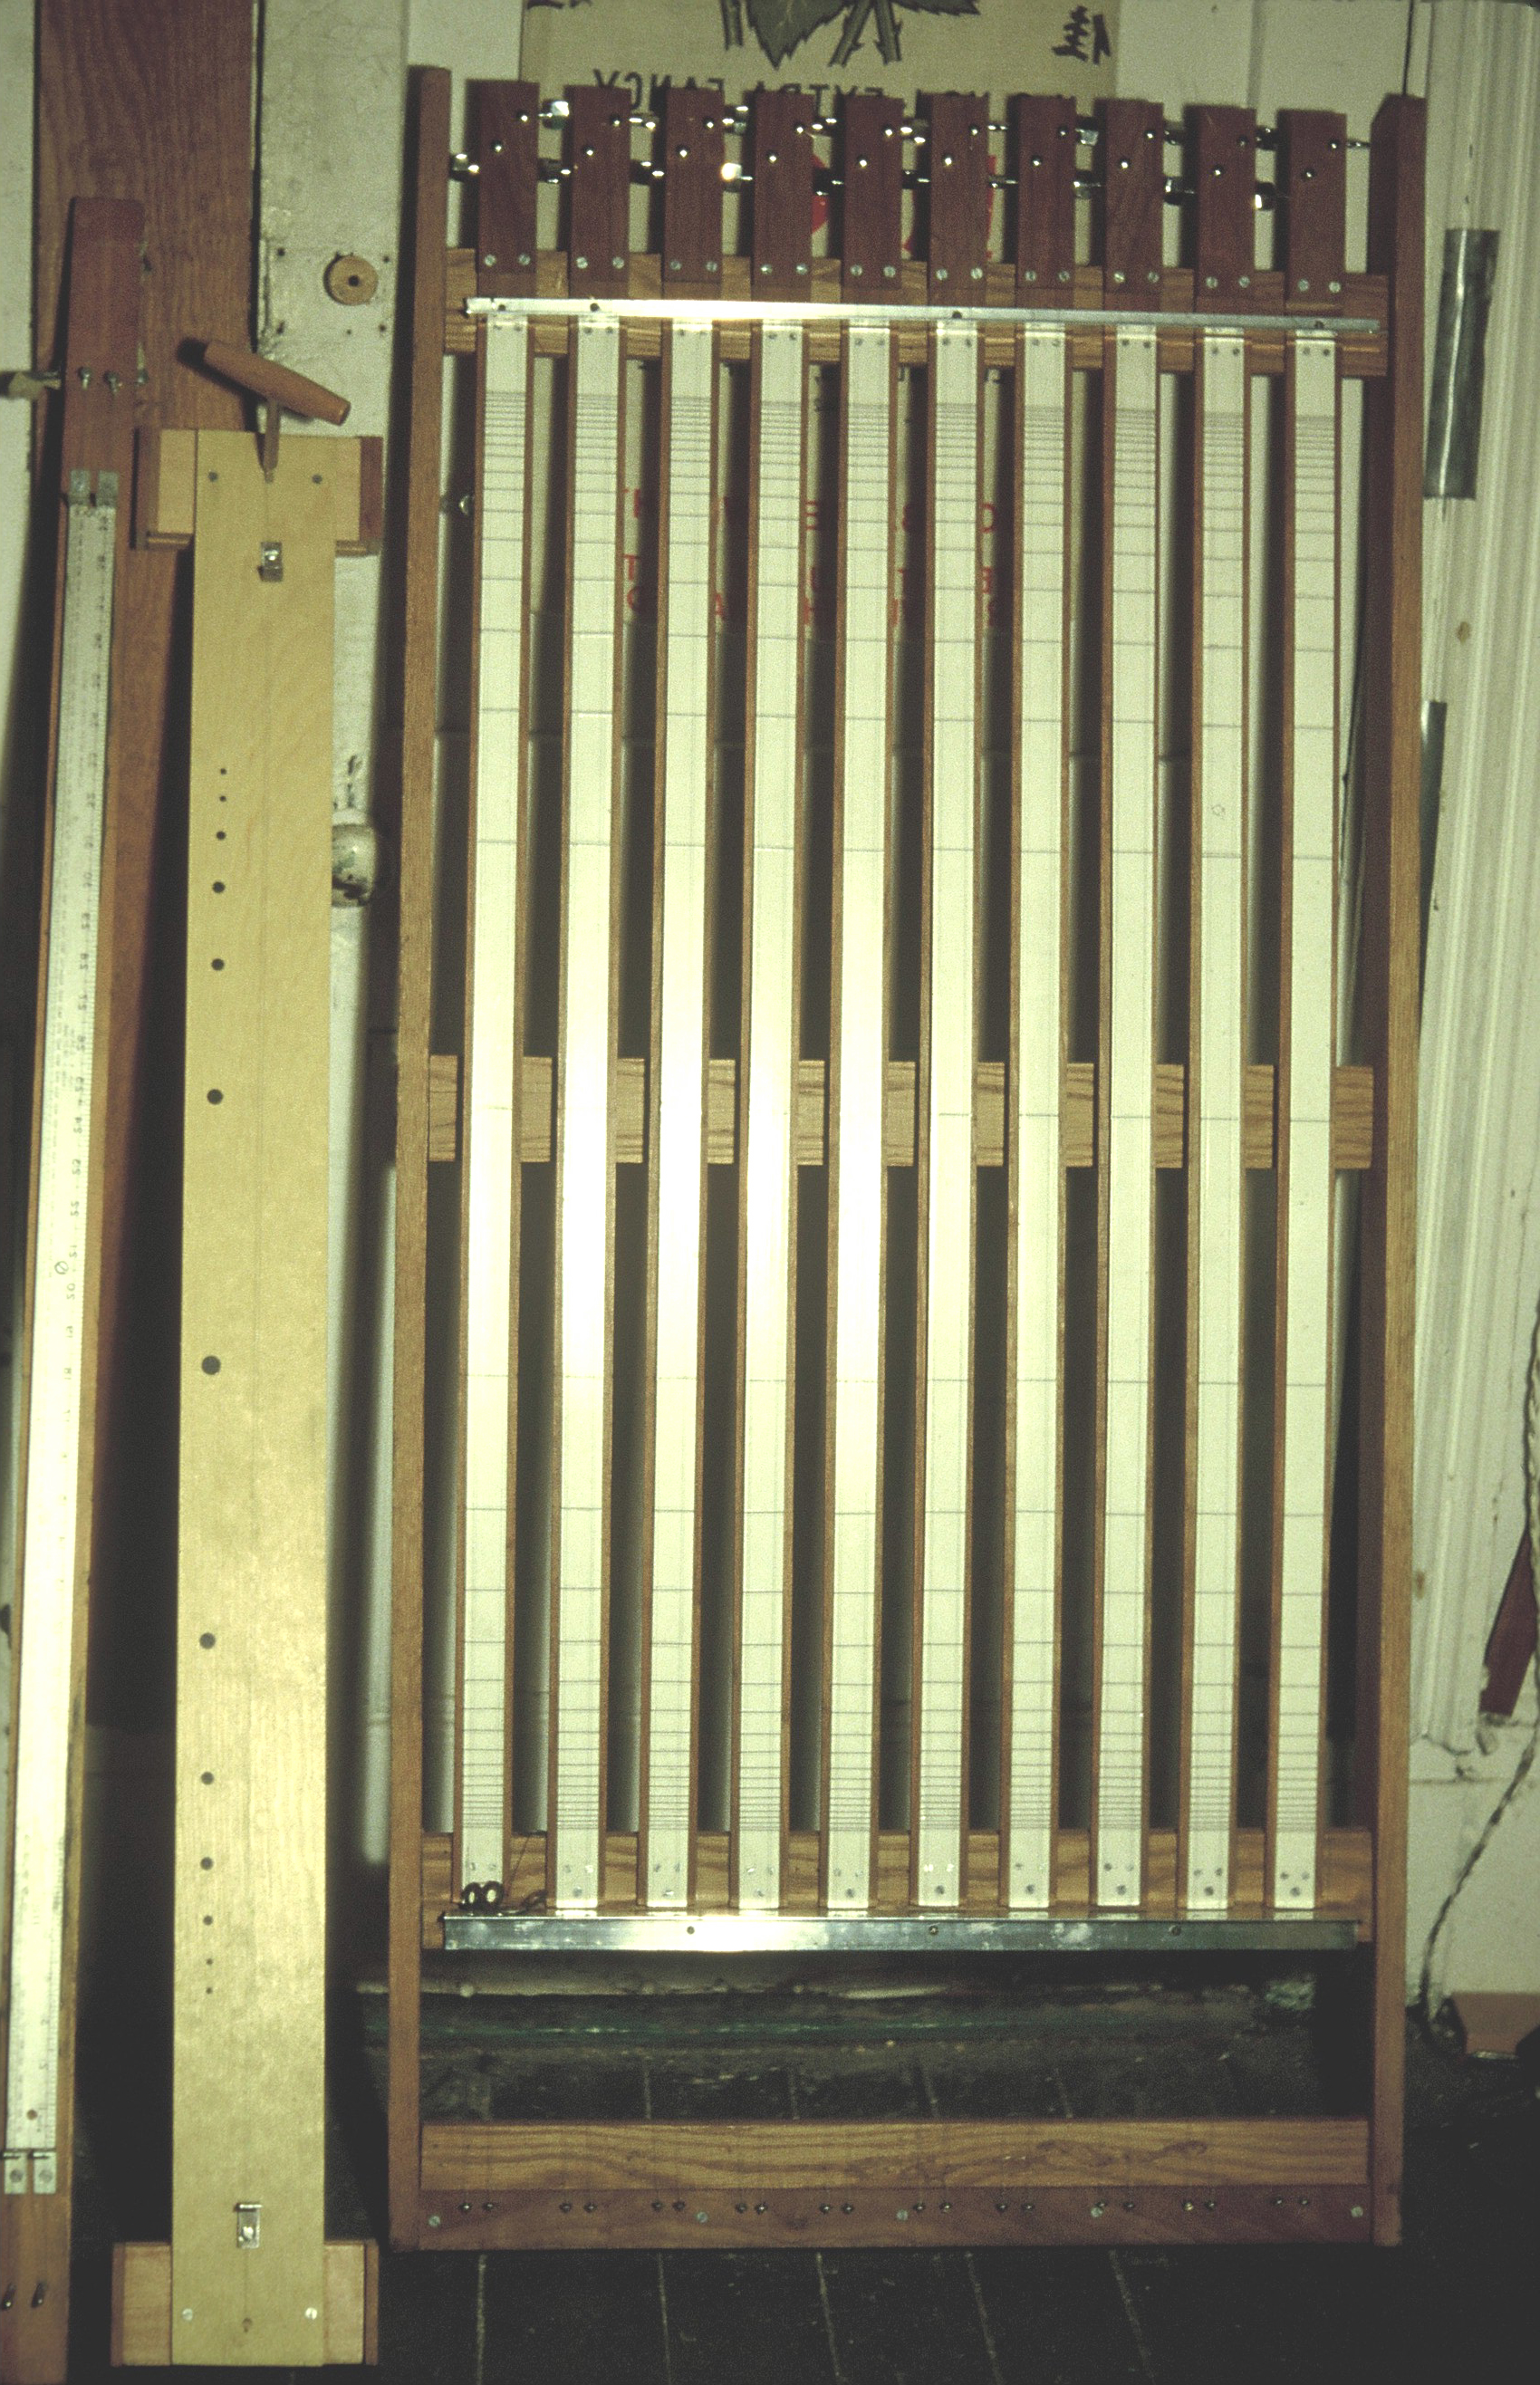 First two monochords, Multiple Zither with hanging nodal locators, Fulton Street Studio, 1978